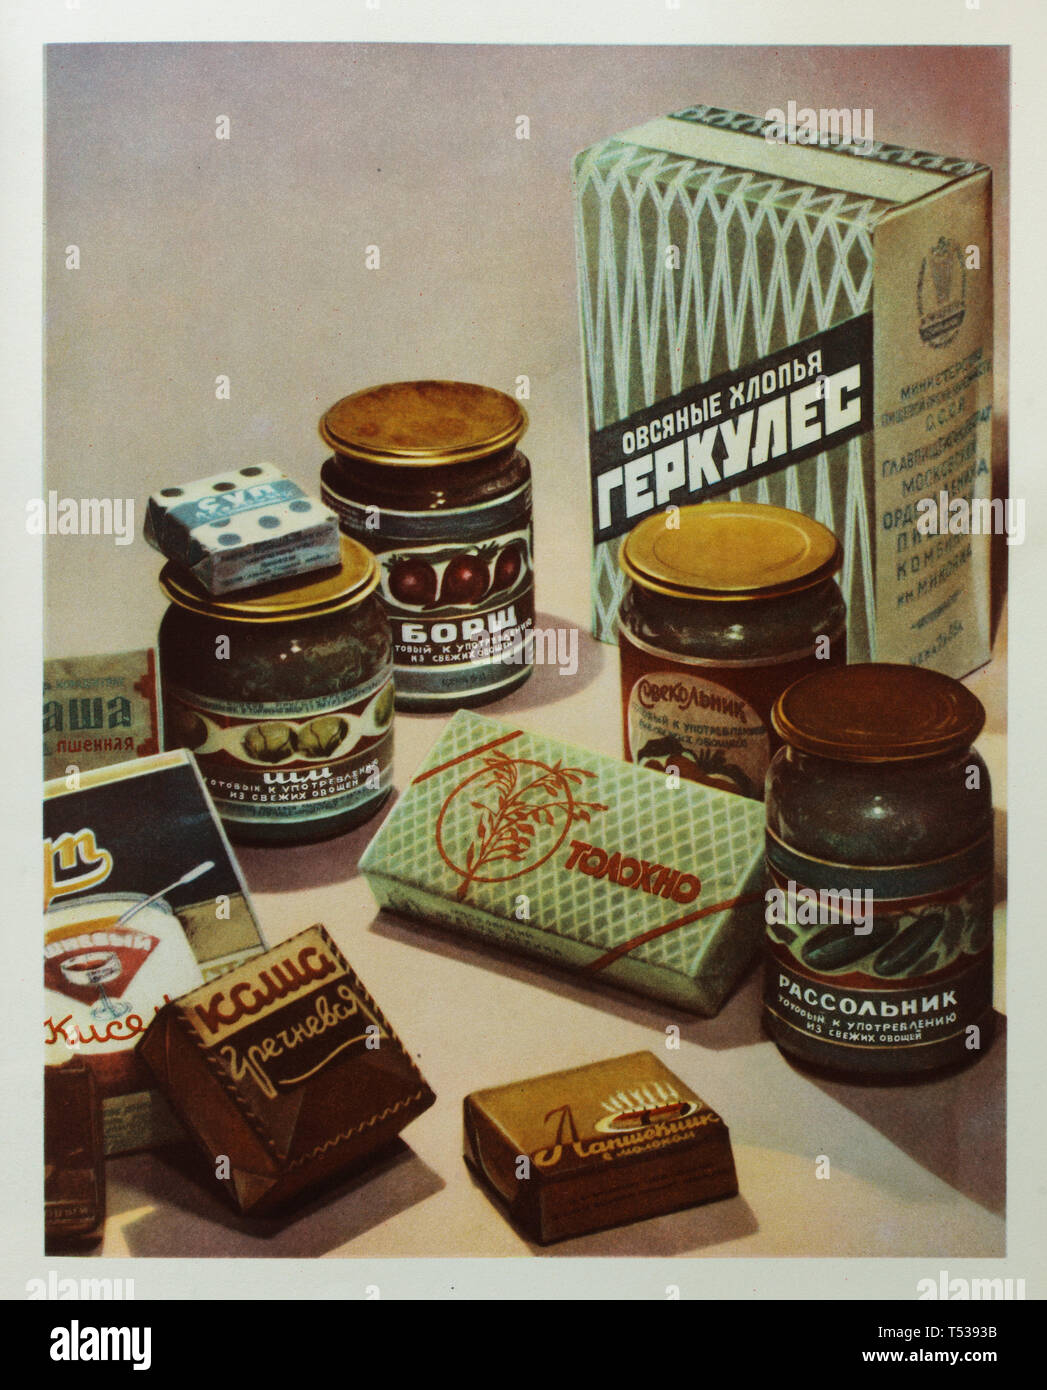 Soviet instant oatmeal Hercules, tolokno flour, instant buckwheat porridge and canned soups (borscht, rassolnik and cold borscht) depicted in the colour illustration in the Book of Tasty and Healthy Food published in the Soviet Union (1953). Stock Photo